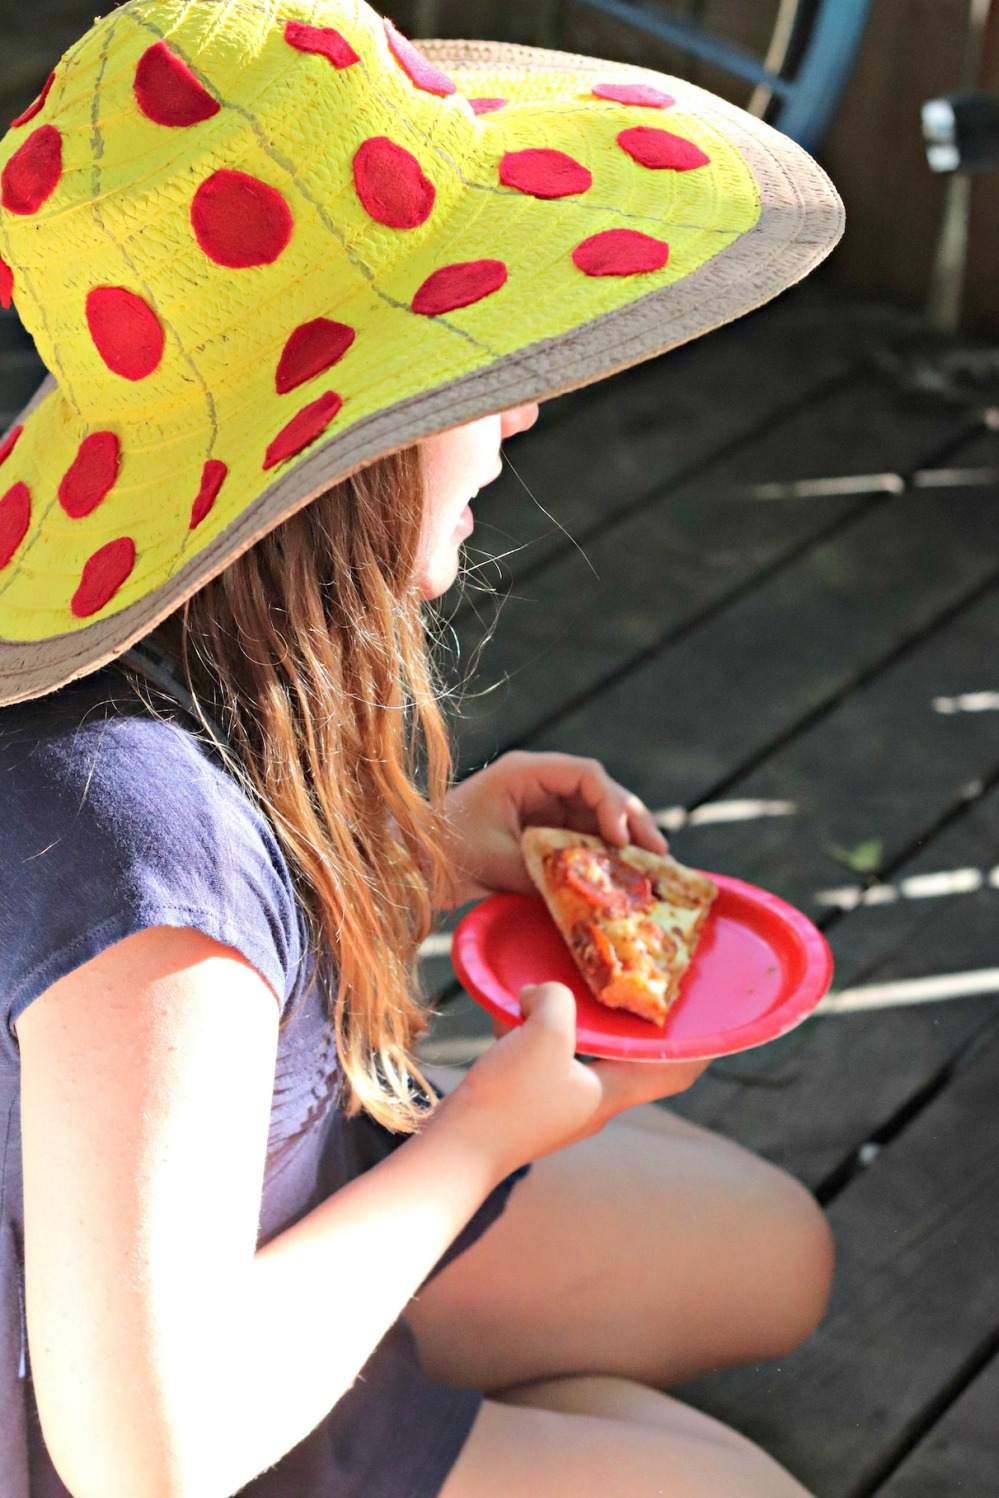 Panago Pizza pizza hat and pepperoni slice